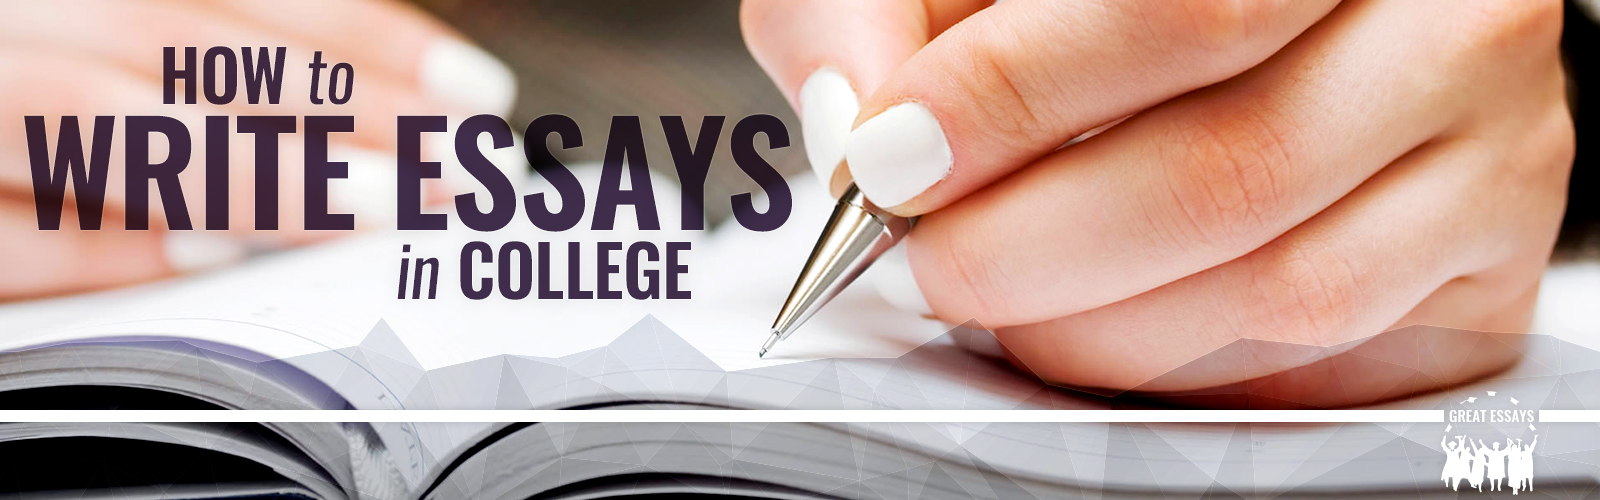 5 Tips for Writing College Essays